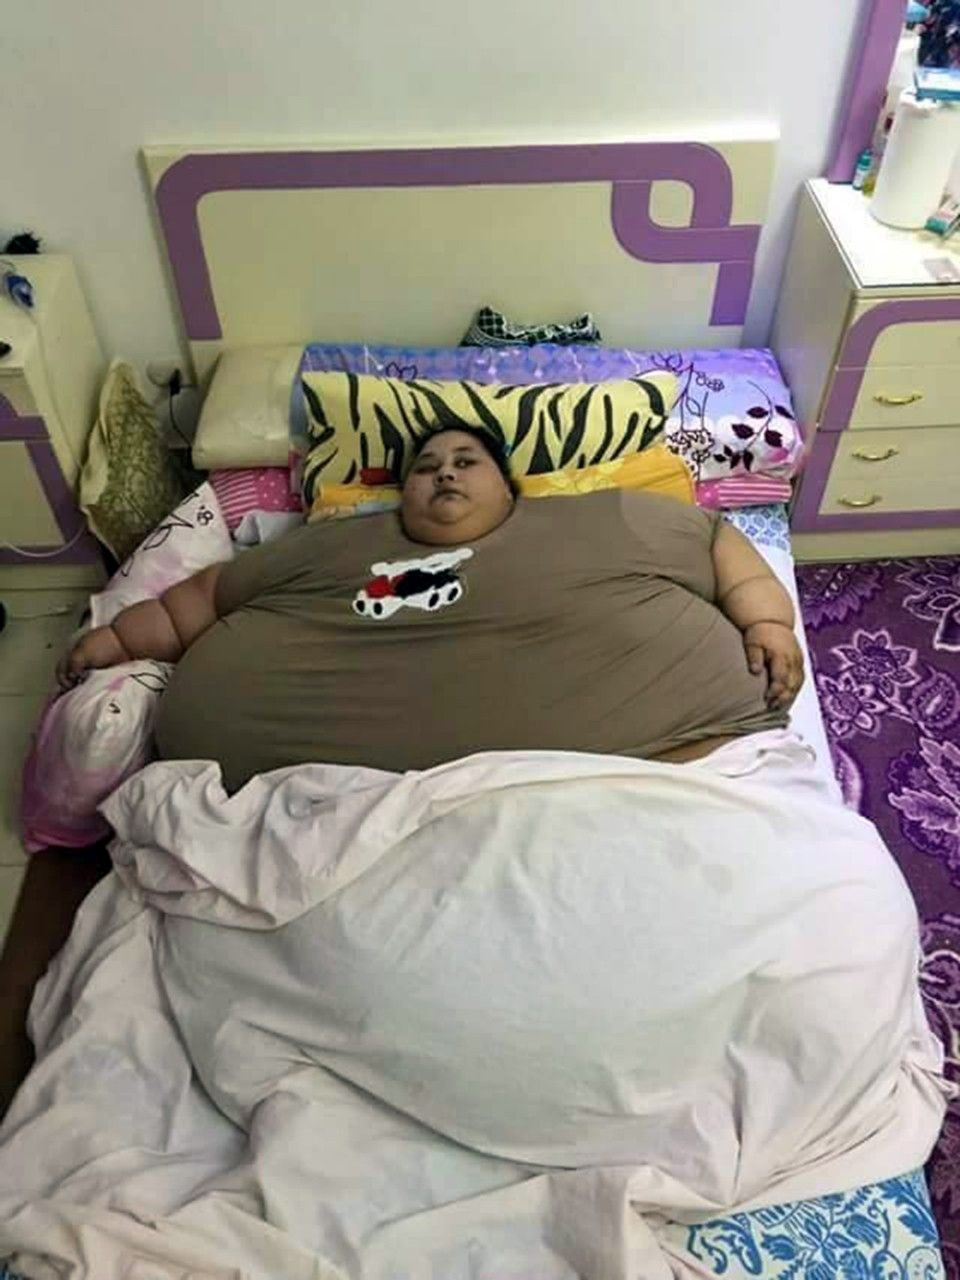 1,000-Pound Woman Trying To Get Help For Weight Problem